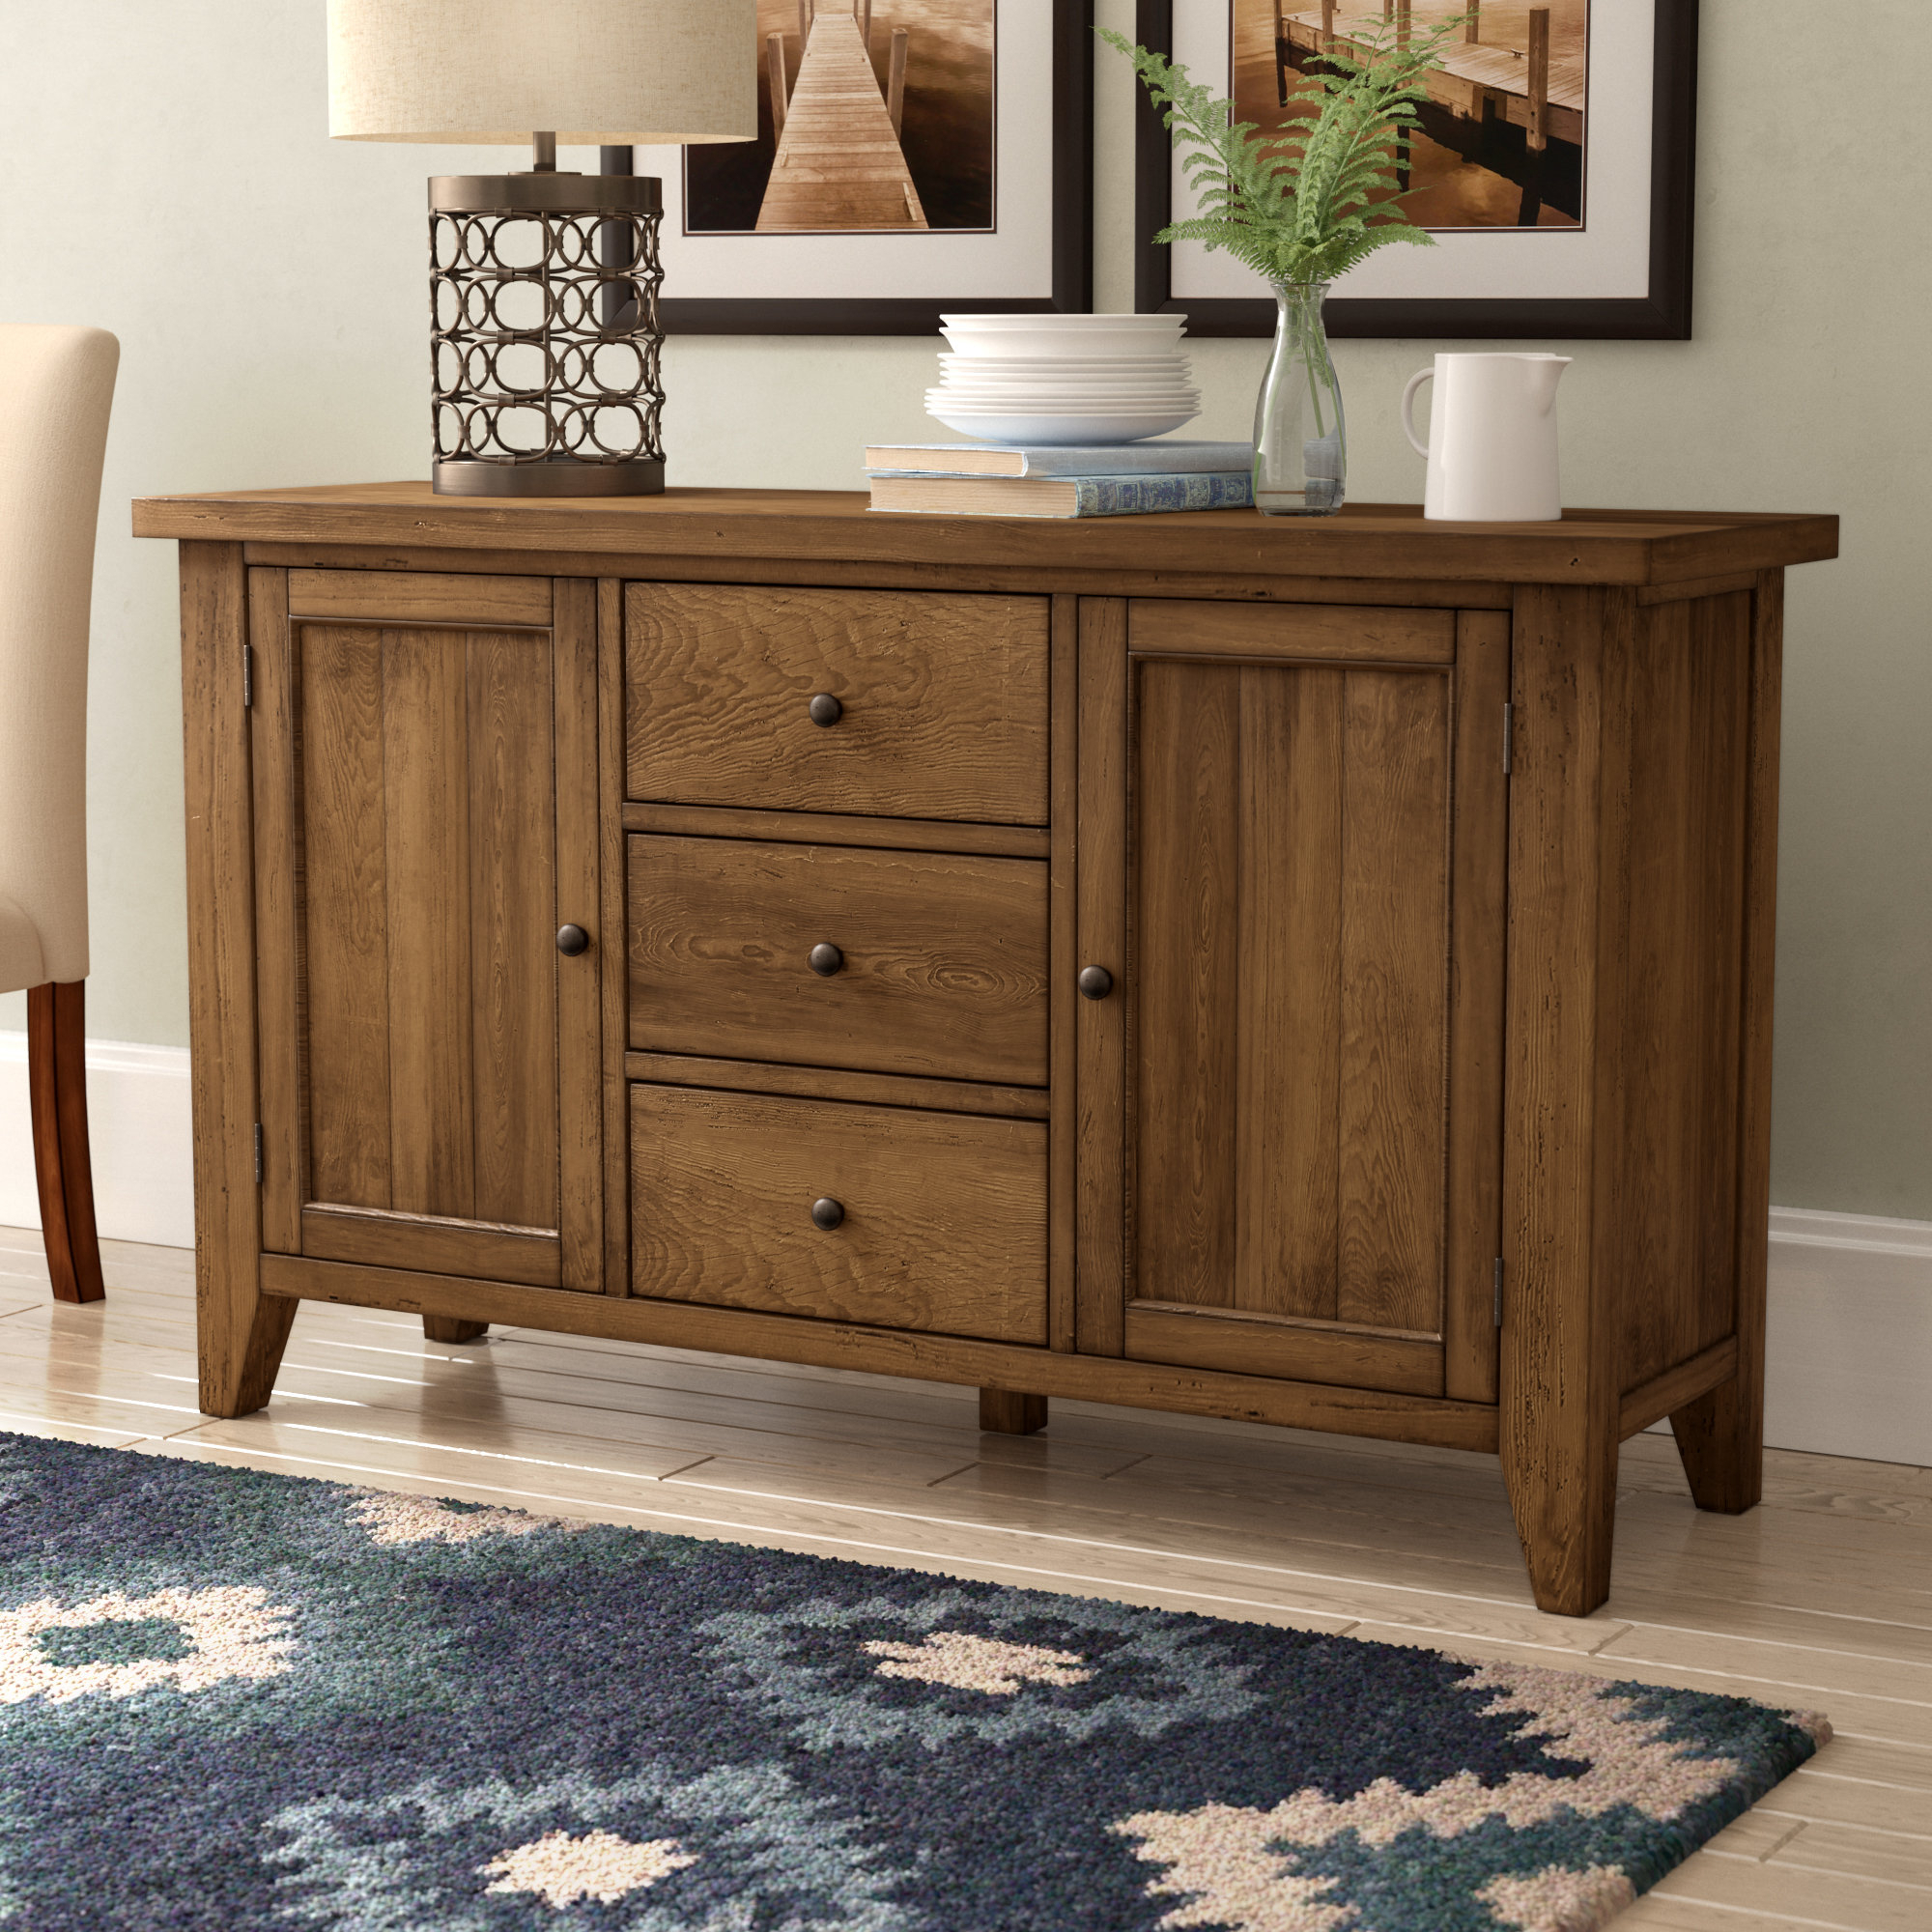 Warkentin Sideboard With Sayles Sideboards (View 5 of 20)